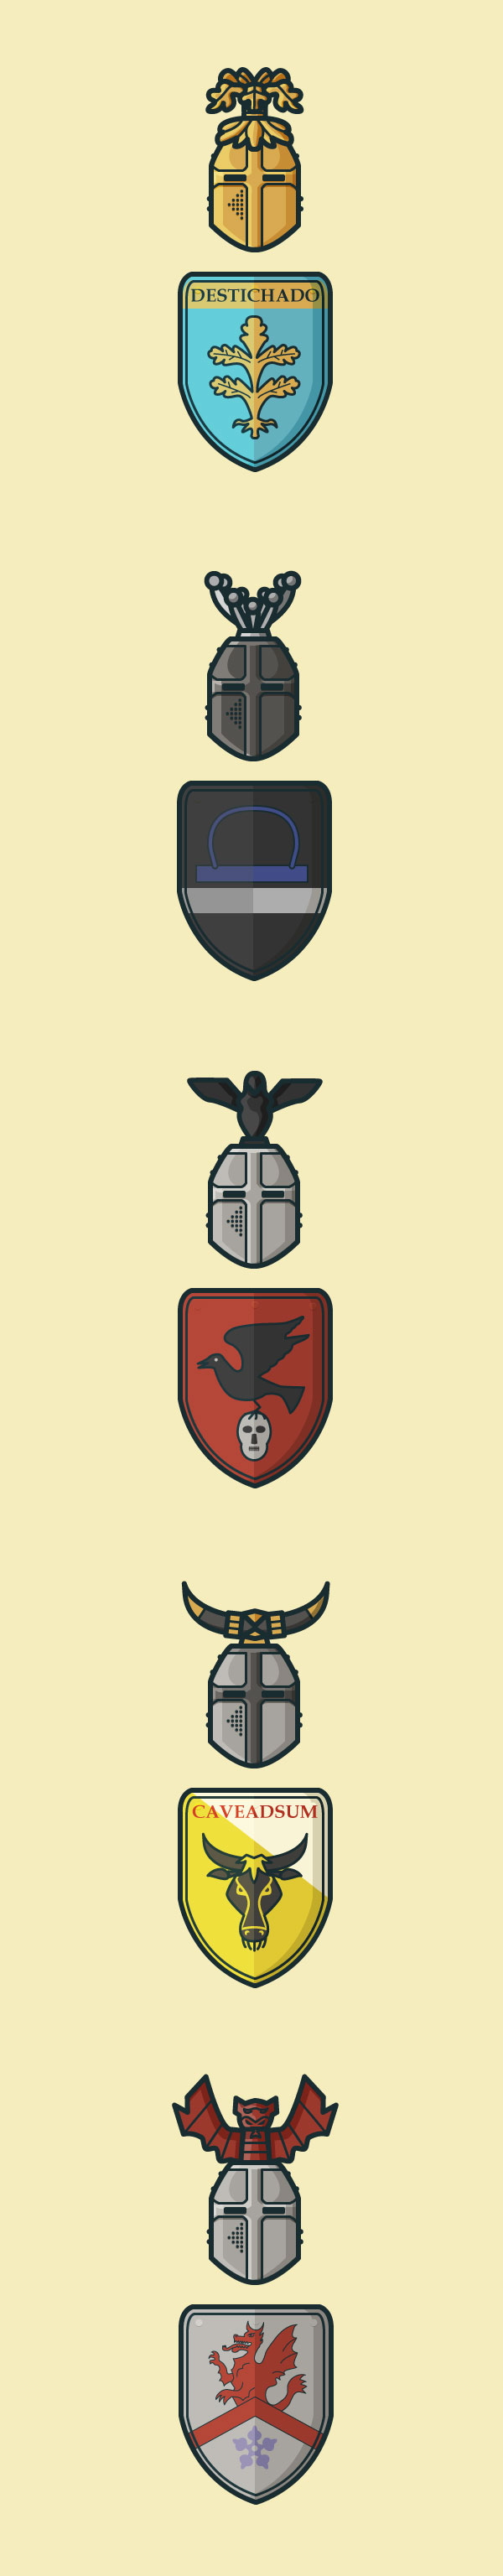 knights of ivanhoe vector